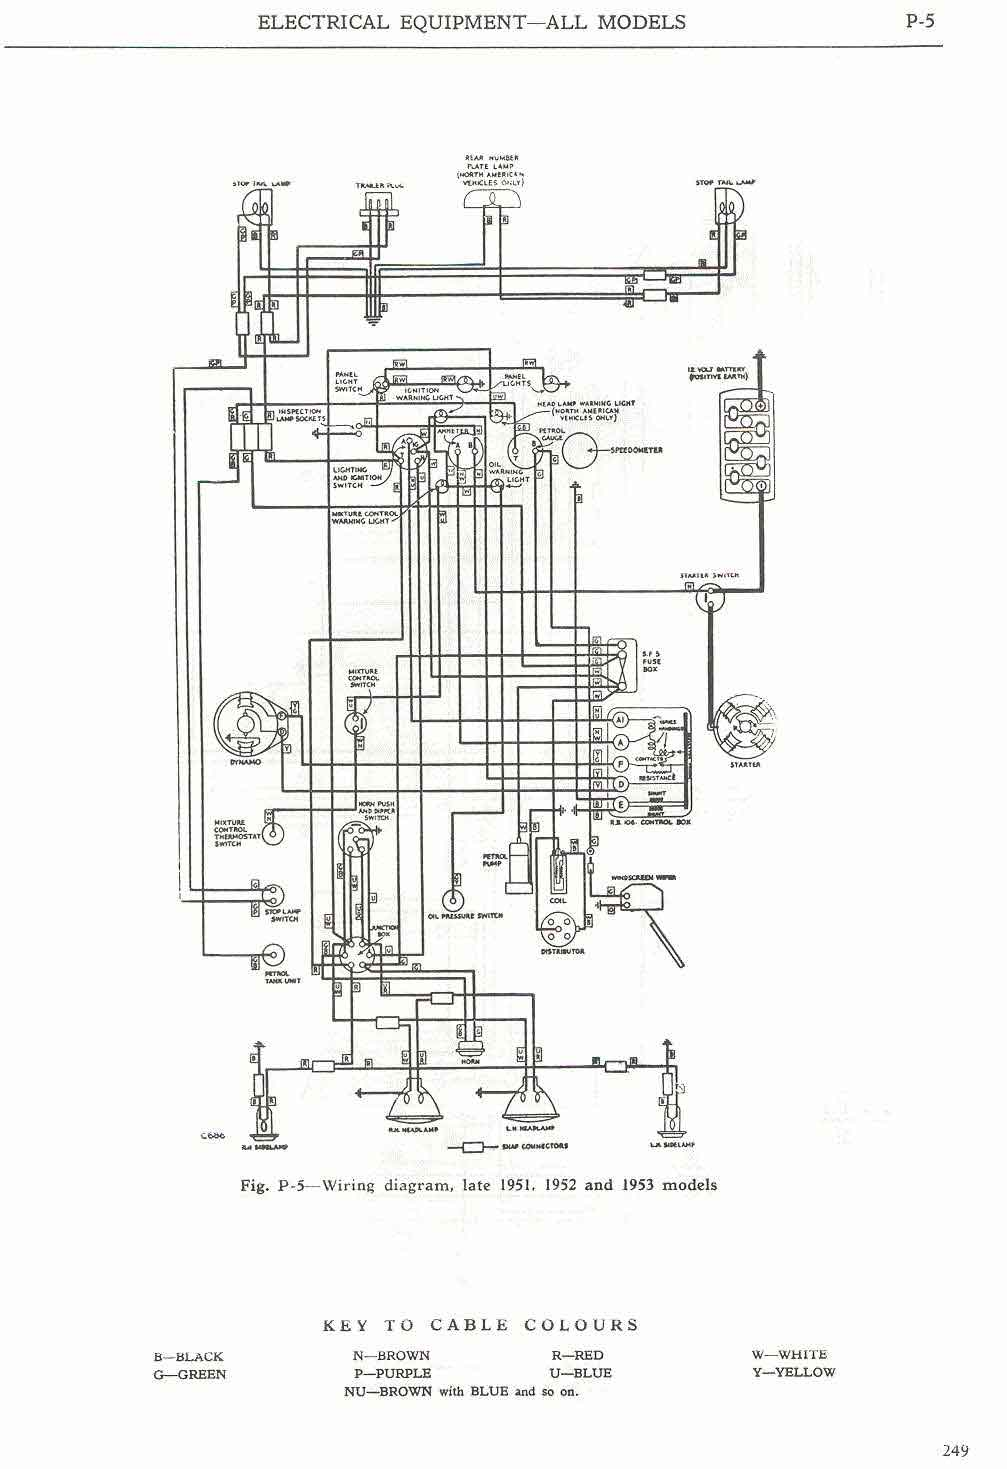 hight resolution of  wiring diagram late 1951 and 1952 1953 models